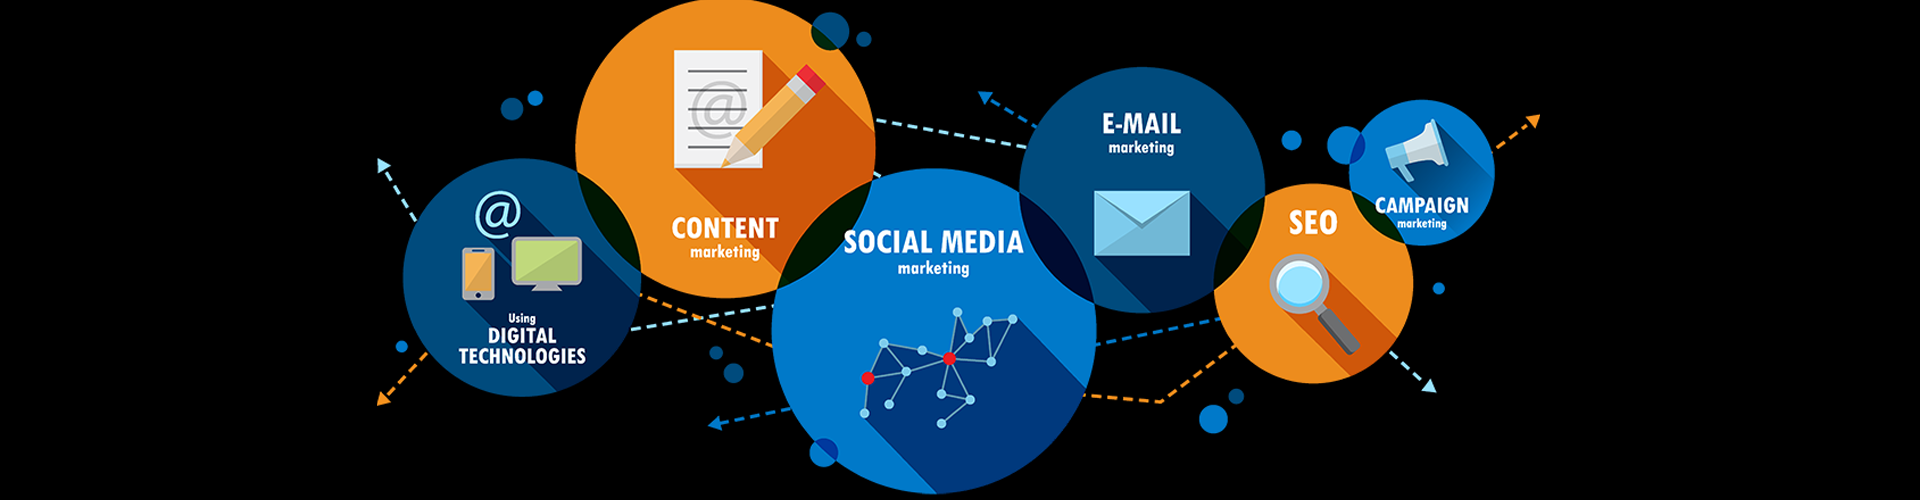 Social Media Publishing - Marketing